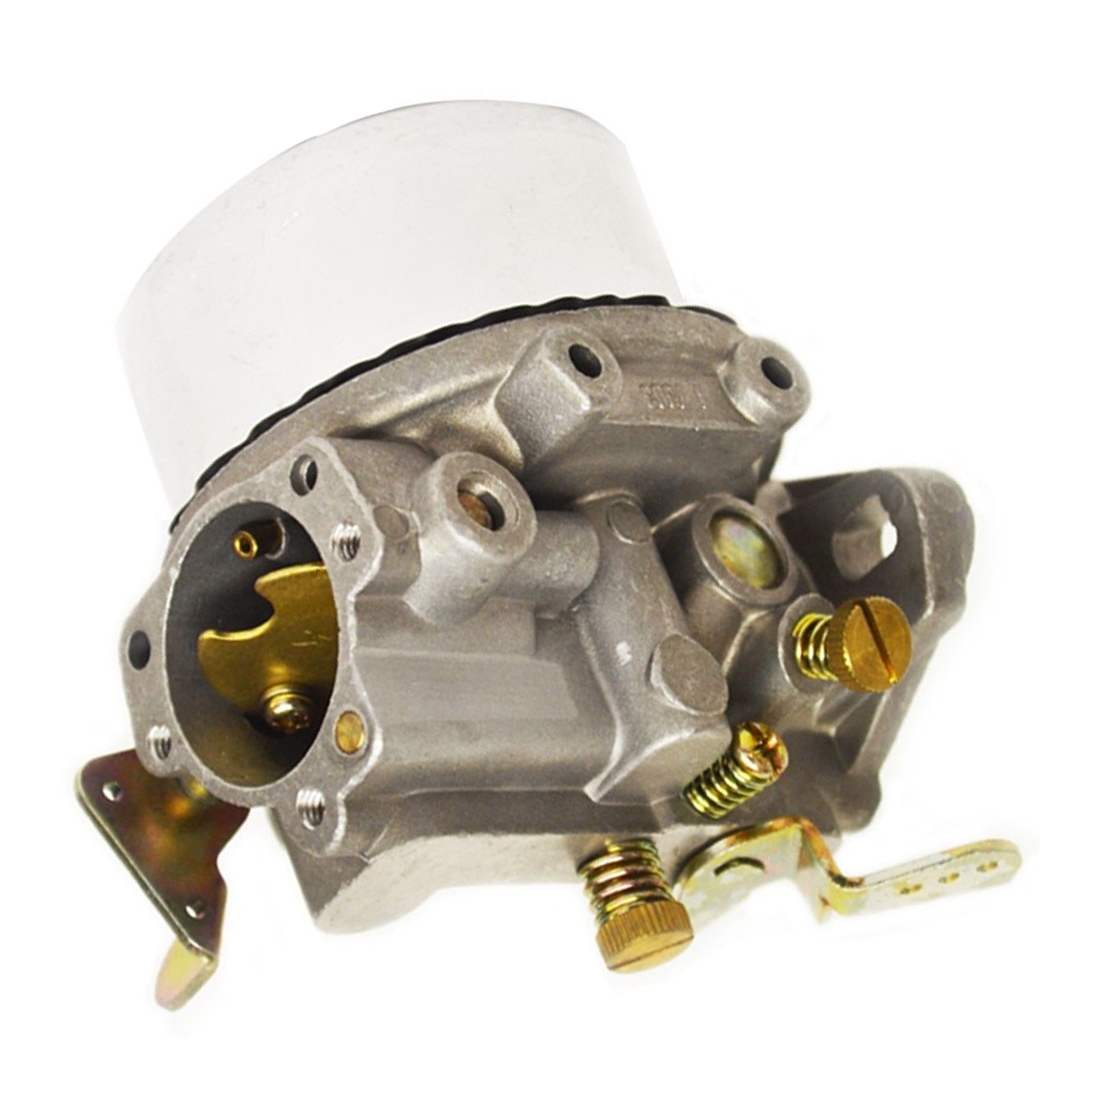 US $11 93 15% OFF|For Kohler Engine Motor Carb Carburetor For K90 K91 K141  K160 K161 K181 Engines-in Carburetors from Automobiles & Motorcycles on